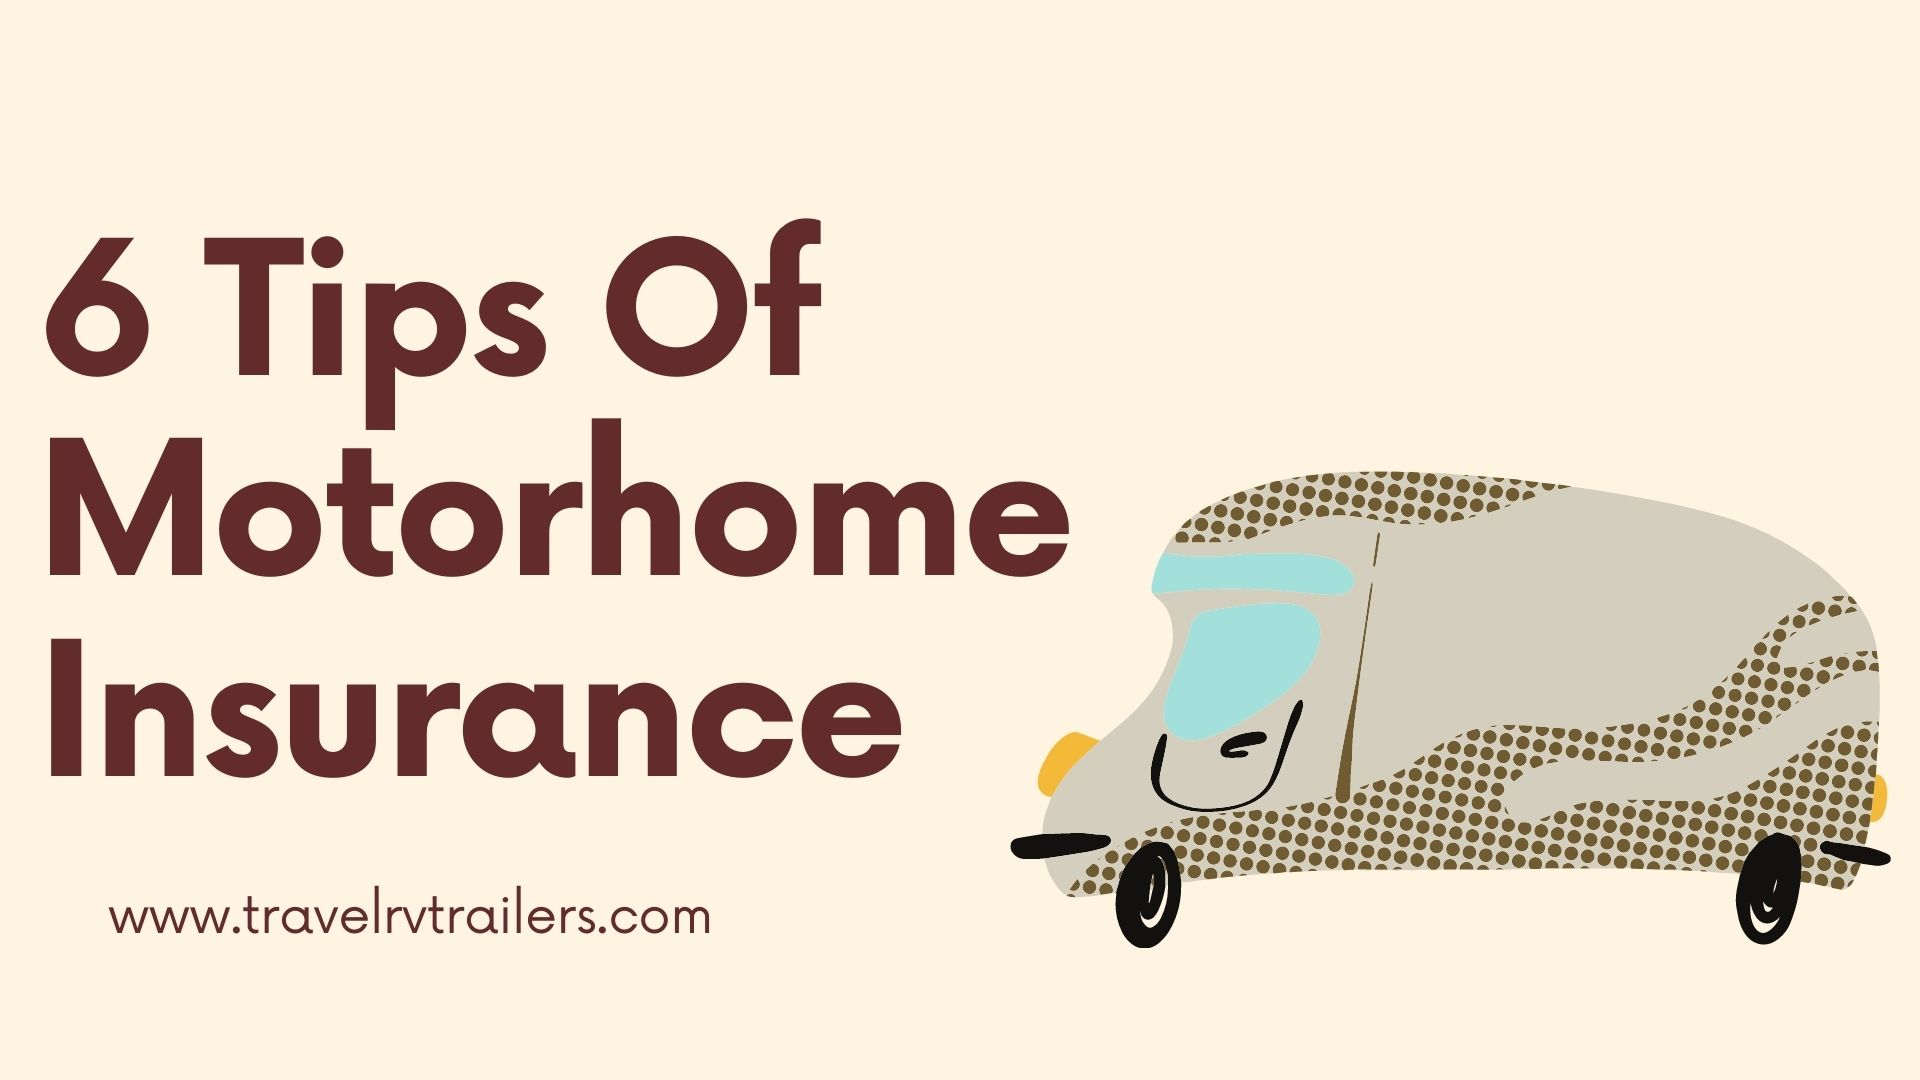 6 Tips Of Motorhome Insurance That Can Save Your Money